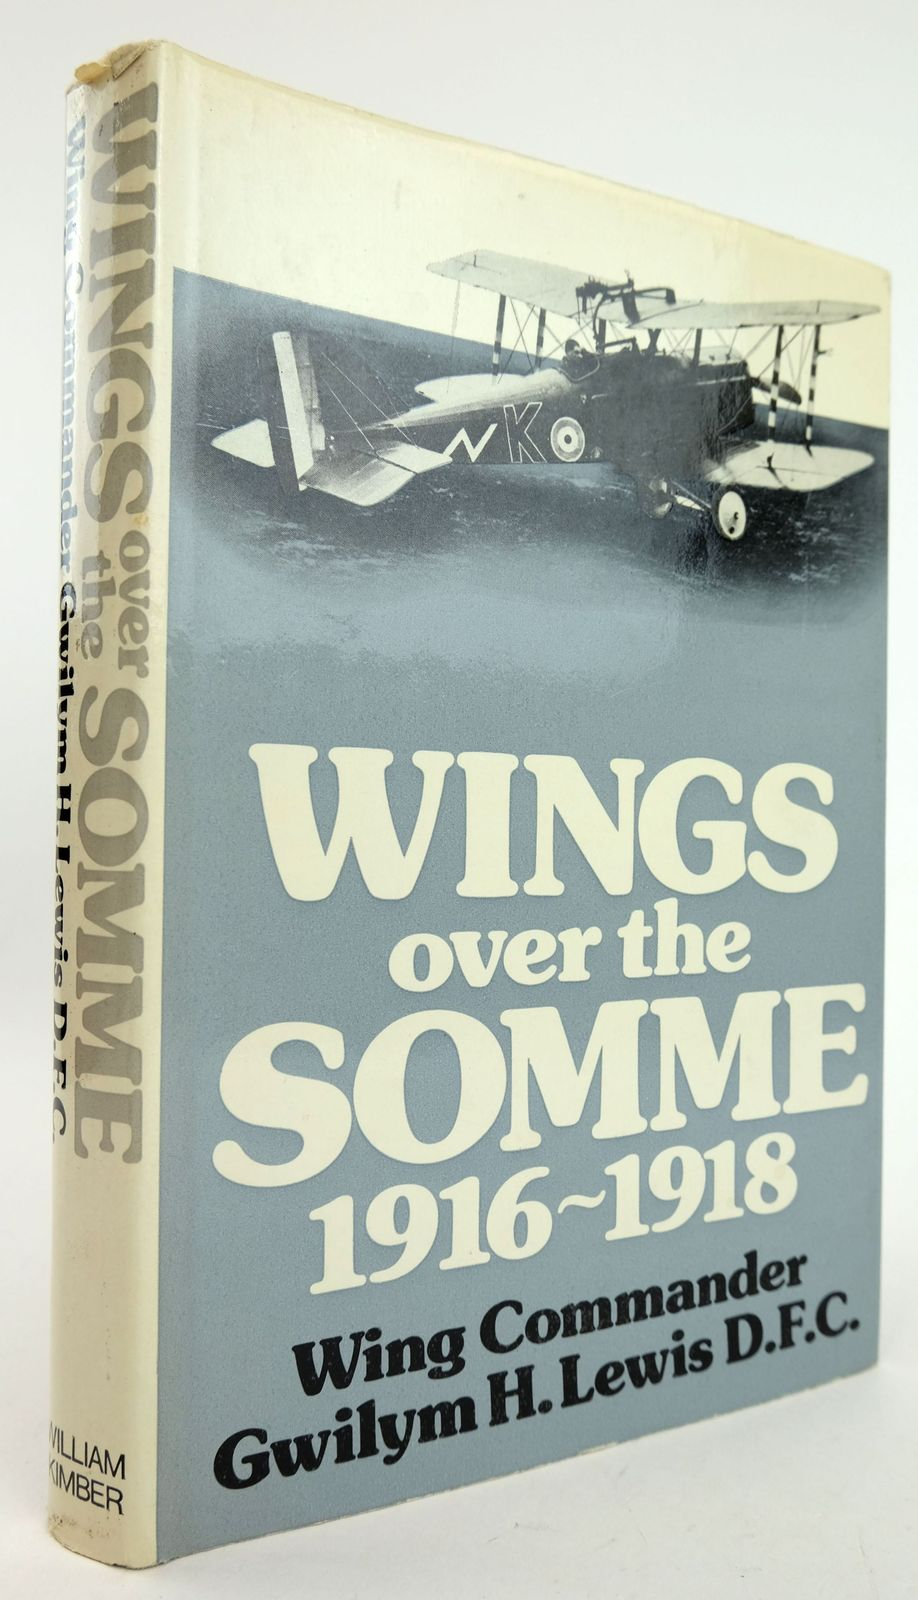 Photo of WINGS OVER THE SOMME 1916-1918 written by Lewis, G.H. published by William Kimber (STOCK CODE: 1819009)  for sale by Stella & Rose's Books